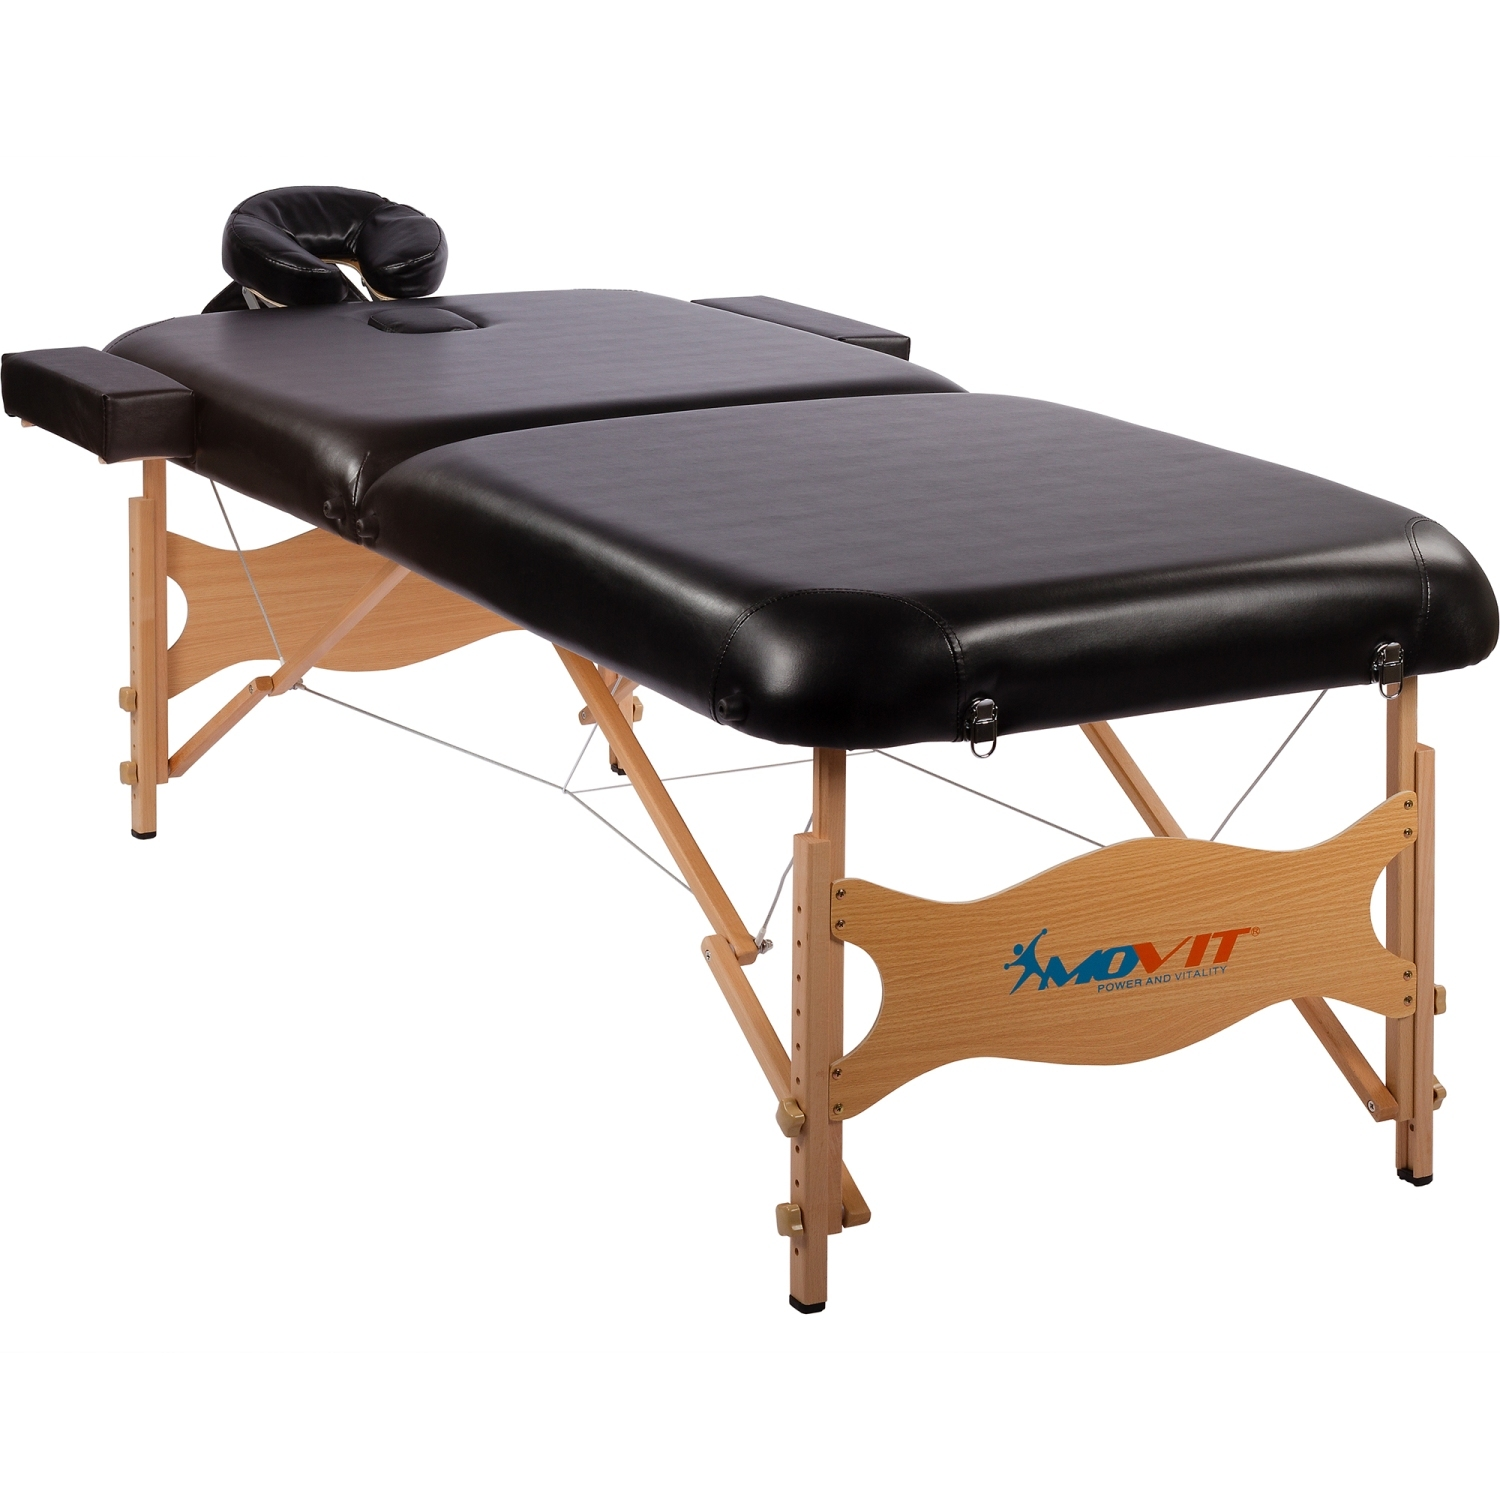 movit de luxe lit de massage table de massage en set 80 cm largeur noir ebay. Black Bedroom Furniture Sets. Home Design Ideas